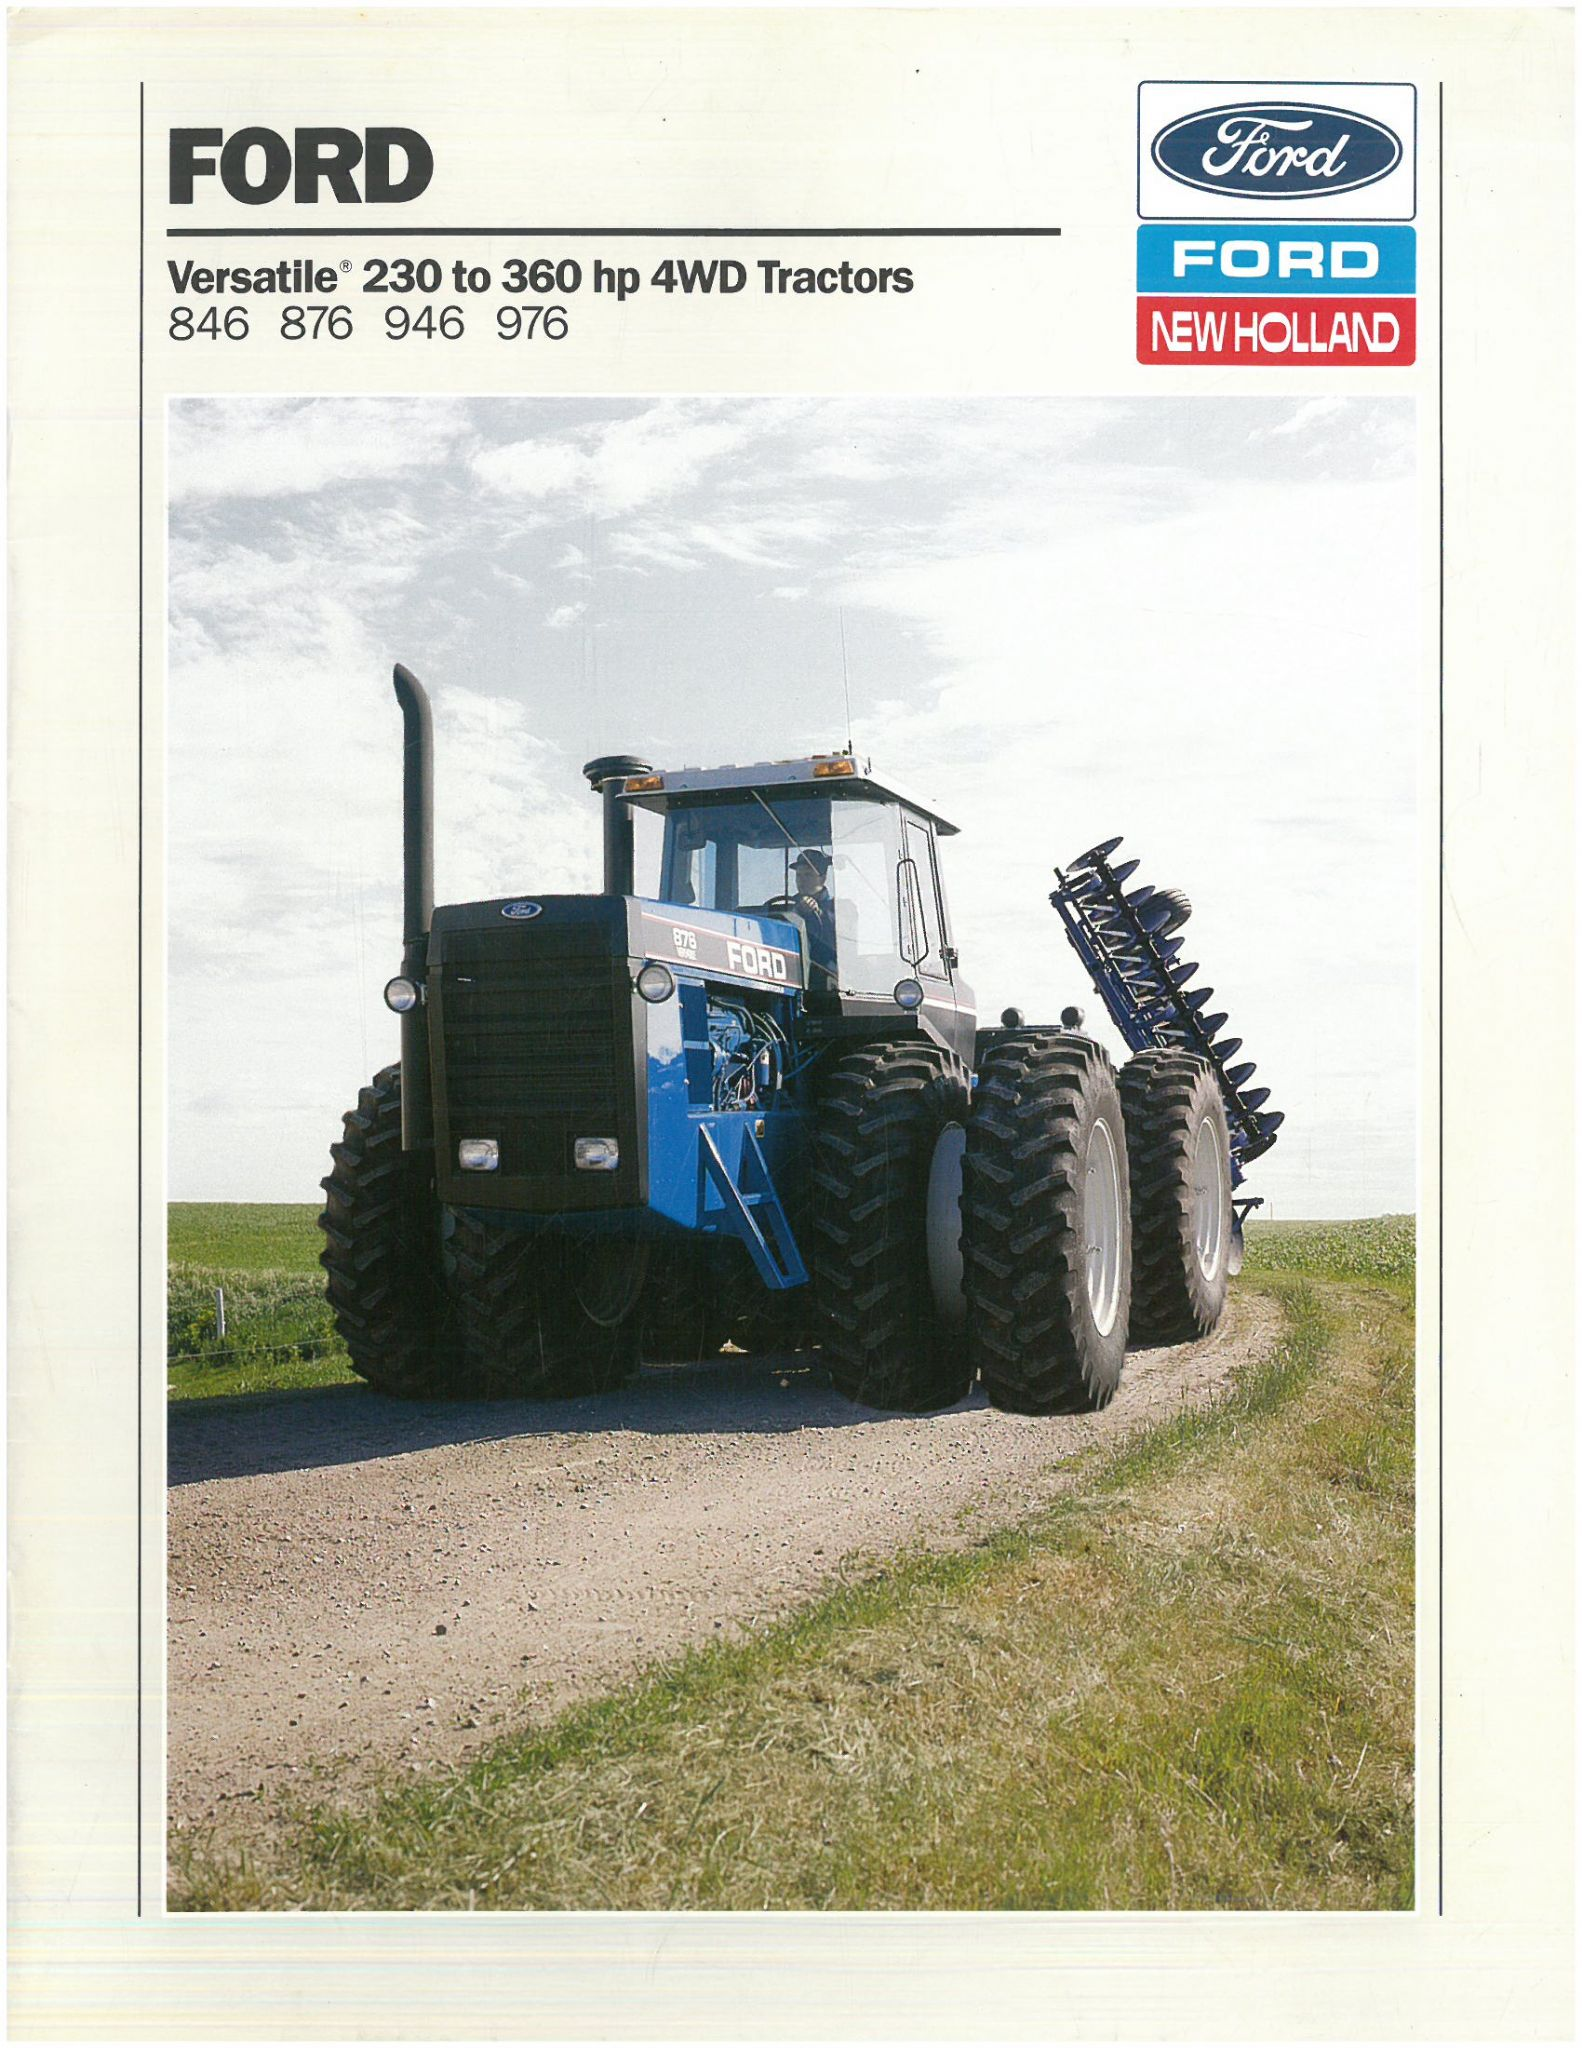 Ford Owners Manual >> Ford Versatile Tractor 846 876 946 976 Brochure